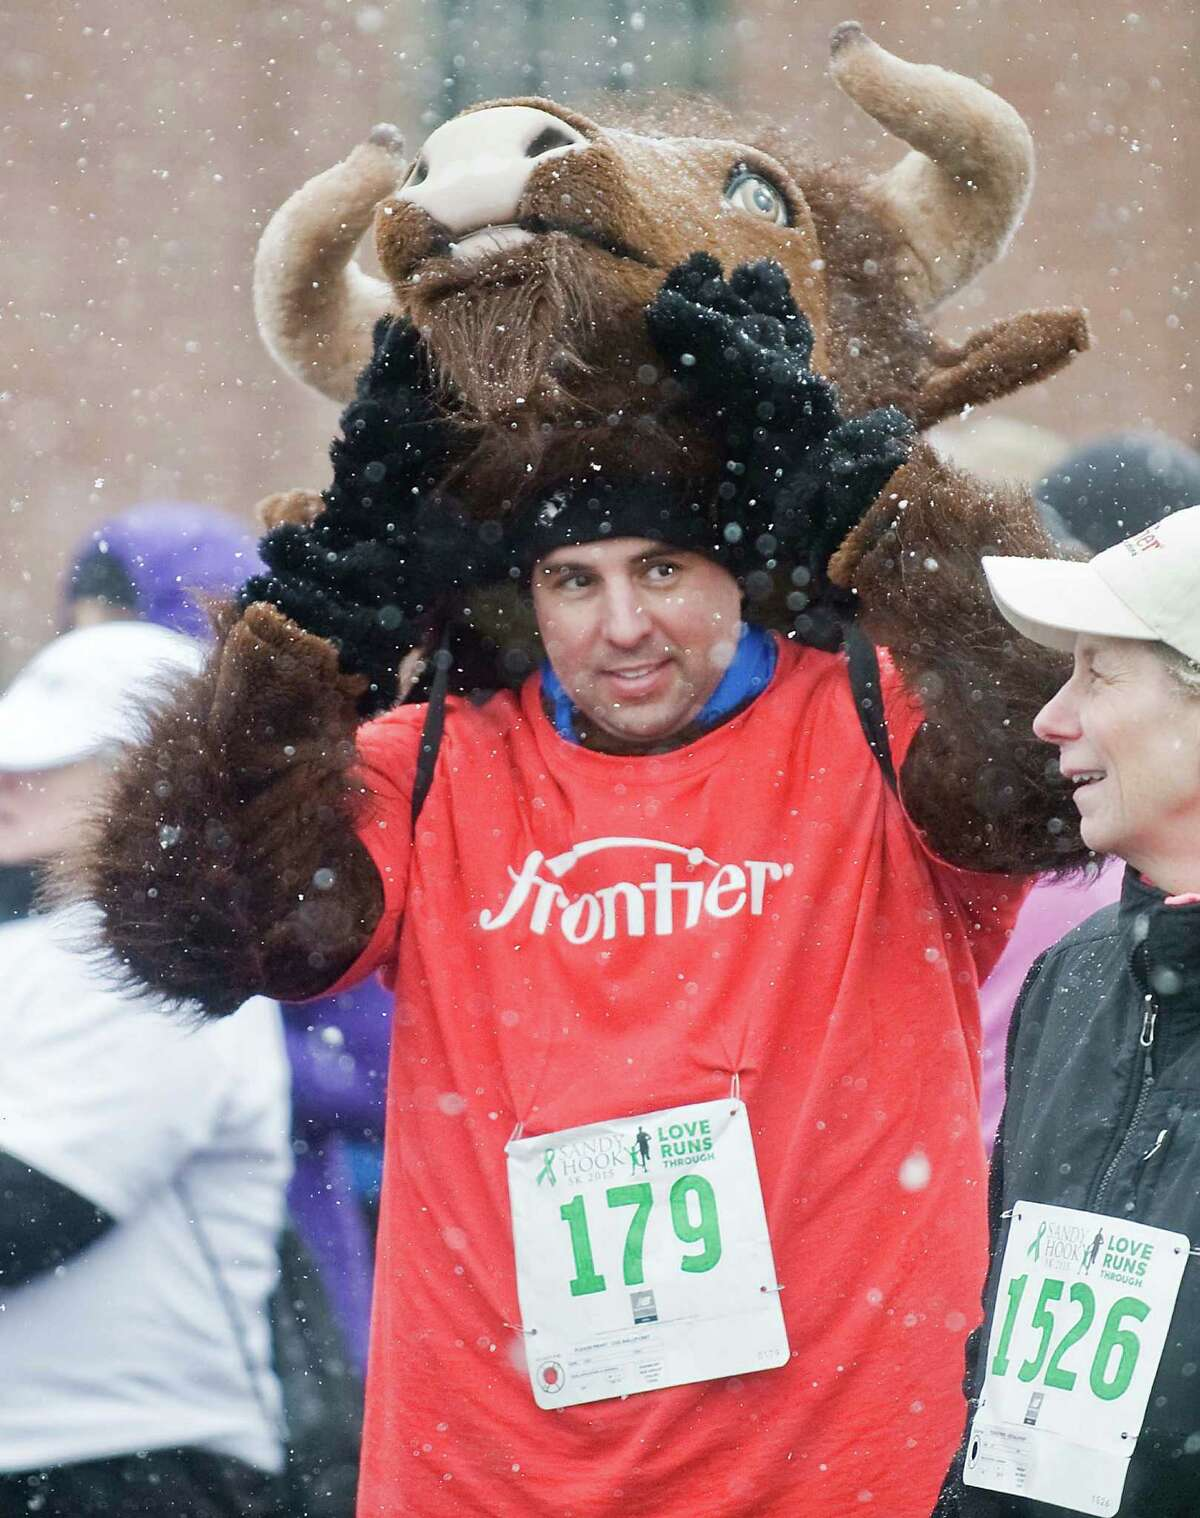 Barry Mustaka readies his buffalo outfit prior to the start of the 3rd annual Sandy Hook 5K race on the Fairfield Hills Campus in Newtown. Saturday, March 28, 2015